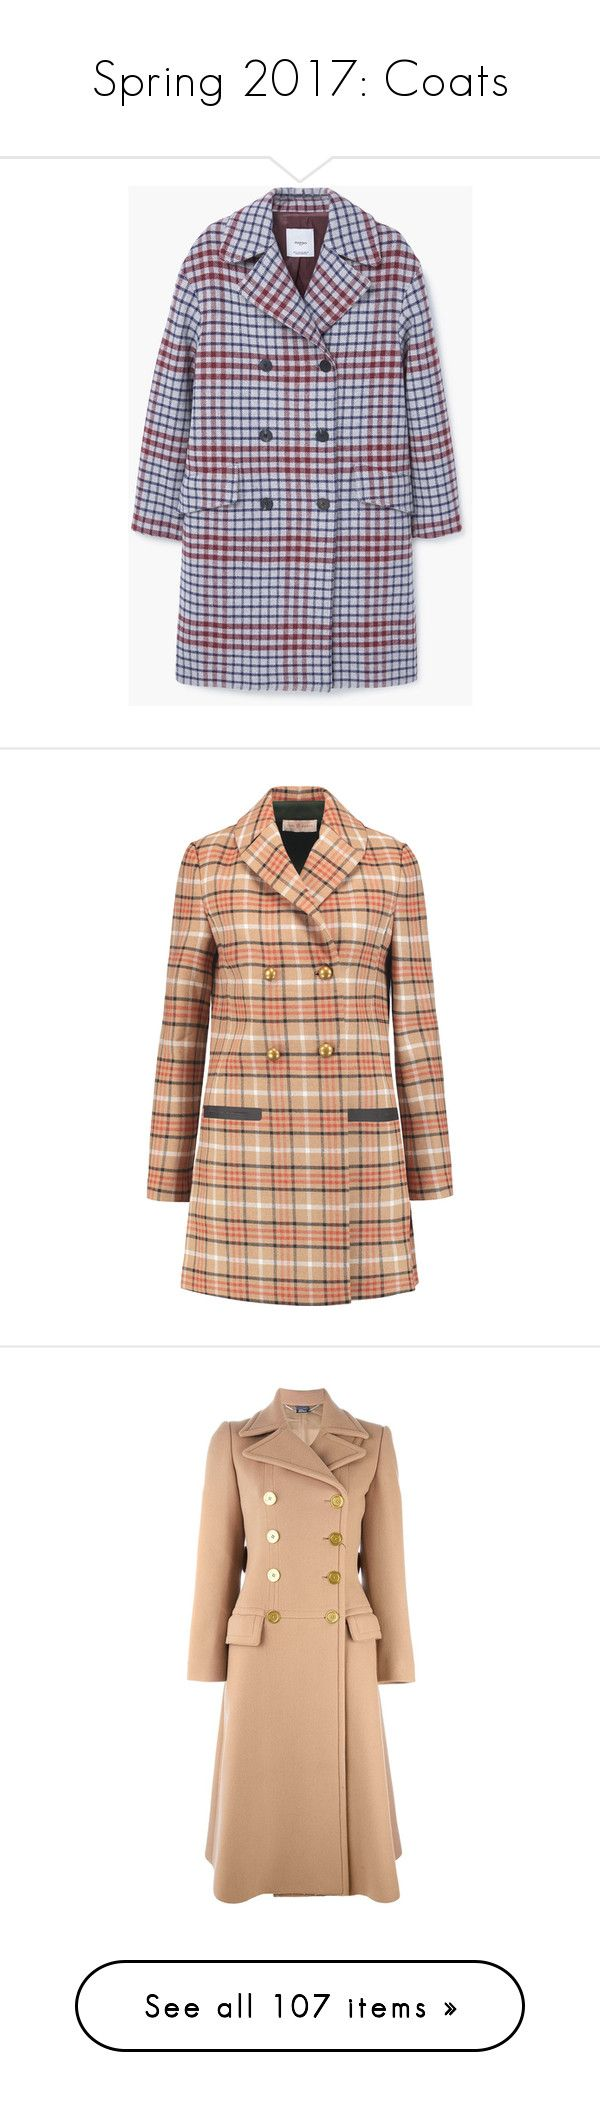 """Spring 2017: Coats"" by lorika-borika on Polyvore featuring outerwear, coats, mango coats, checked coat, checkered coat, fur-lined coats, long sleeve coat, jackets, coats & jackets и tan"